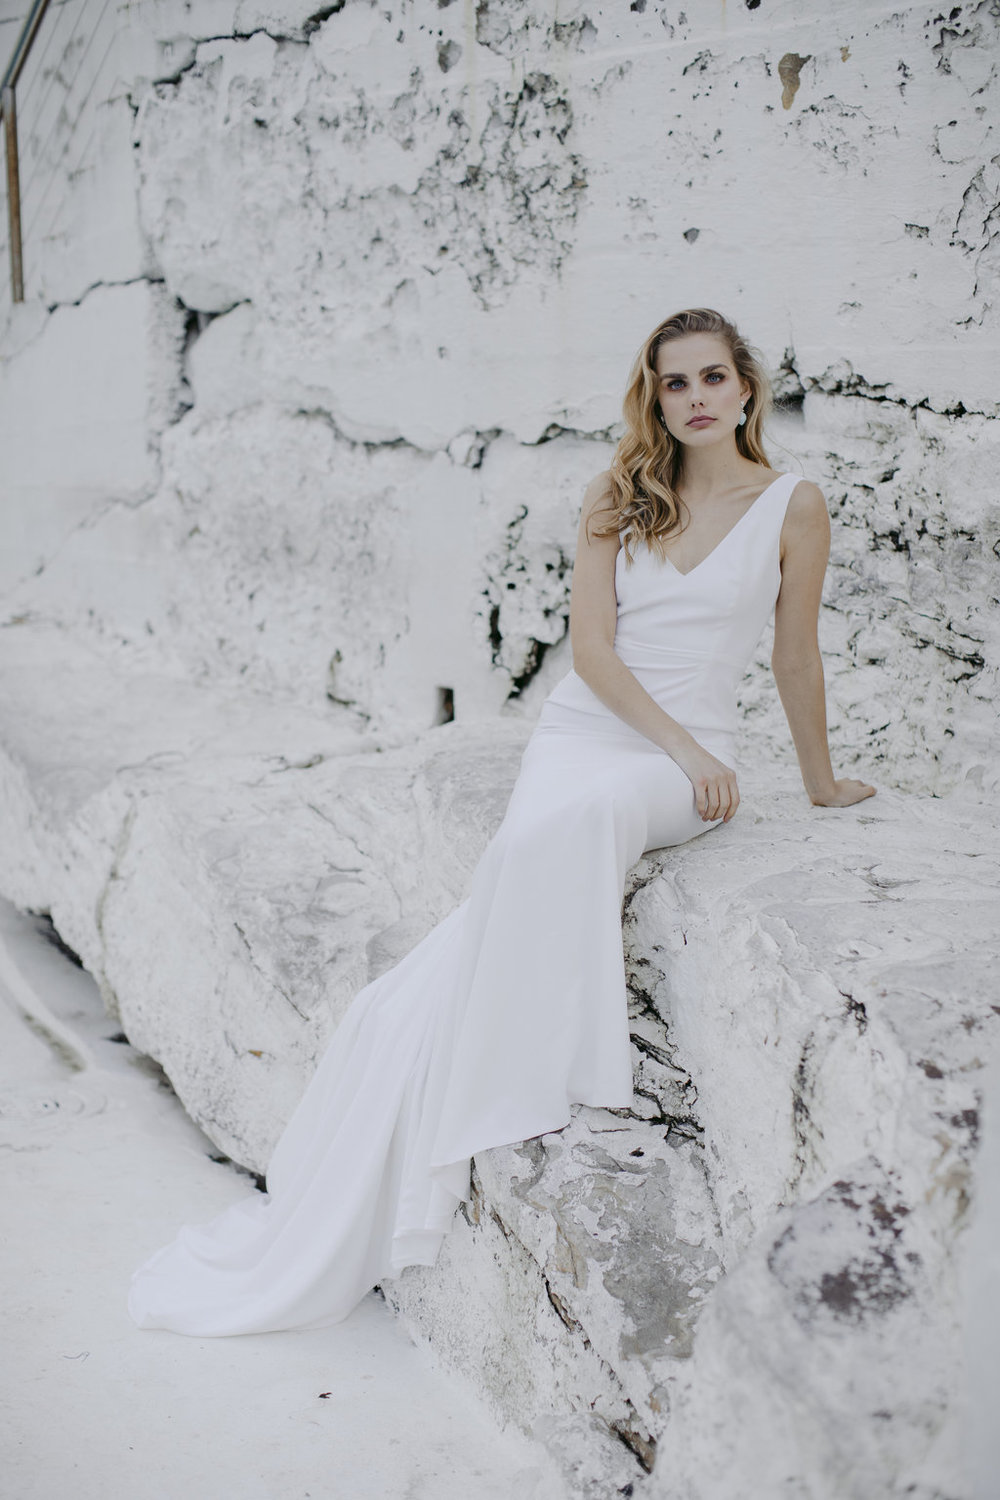 Bowery wedding dress by Jackson and Grace with creative direction by LOVE FIND CO. Creative Studio